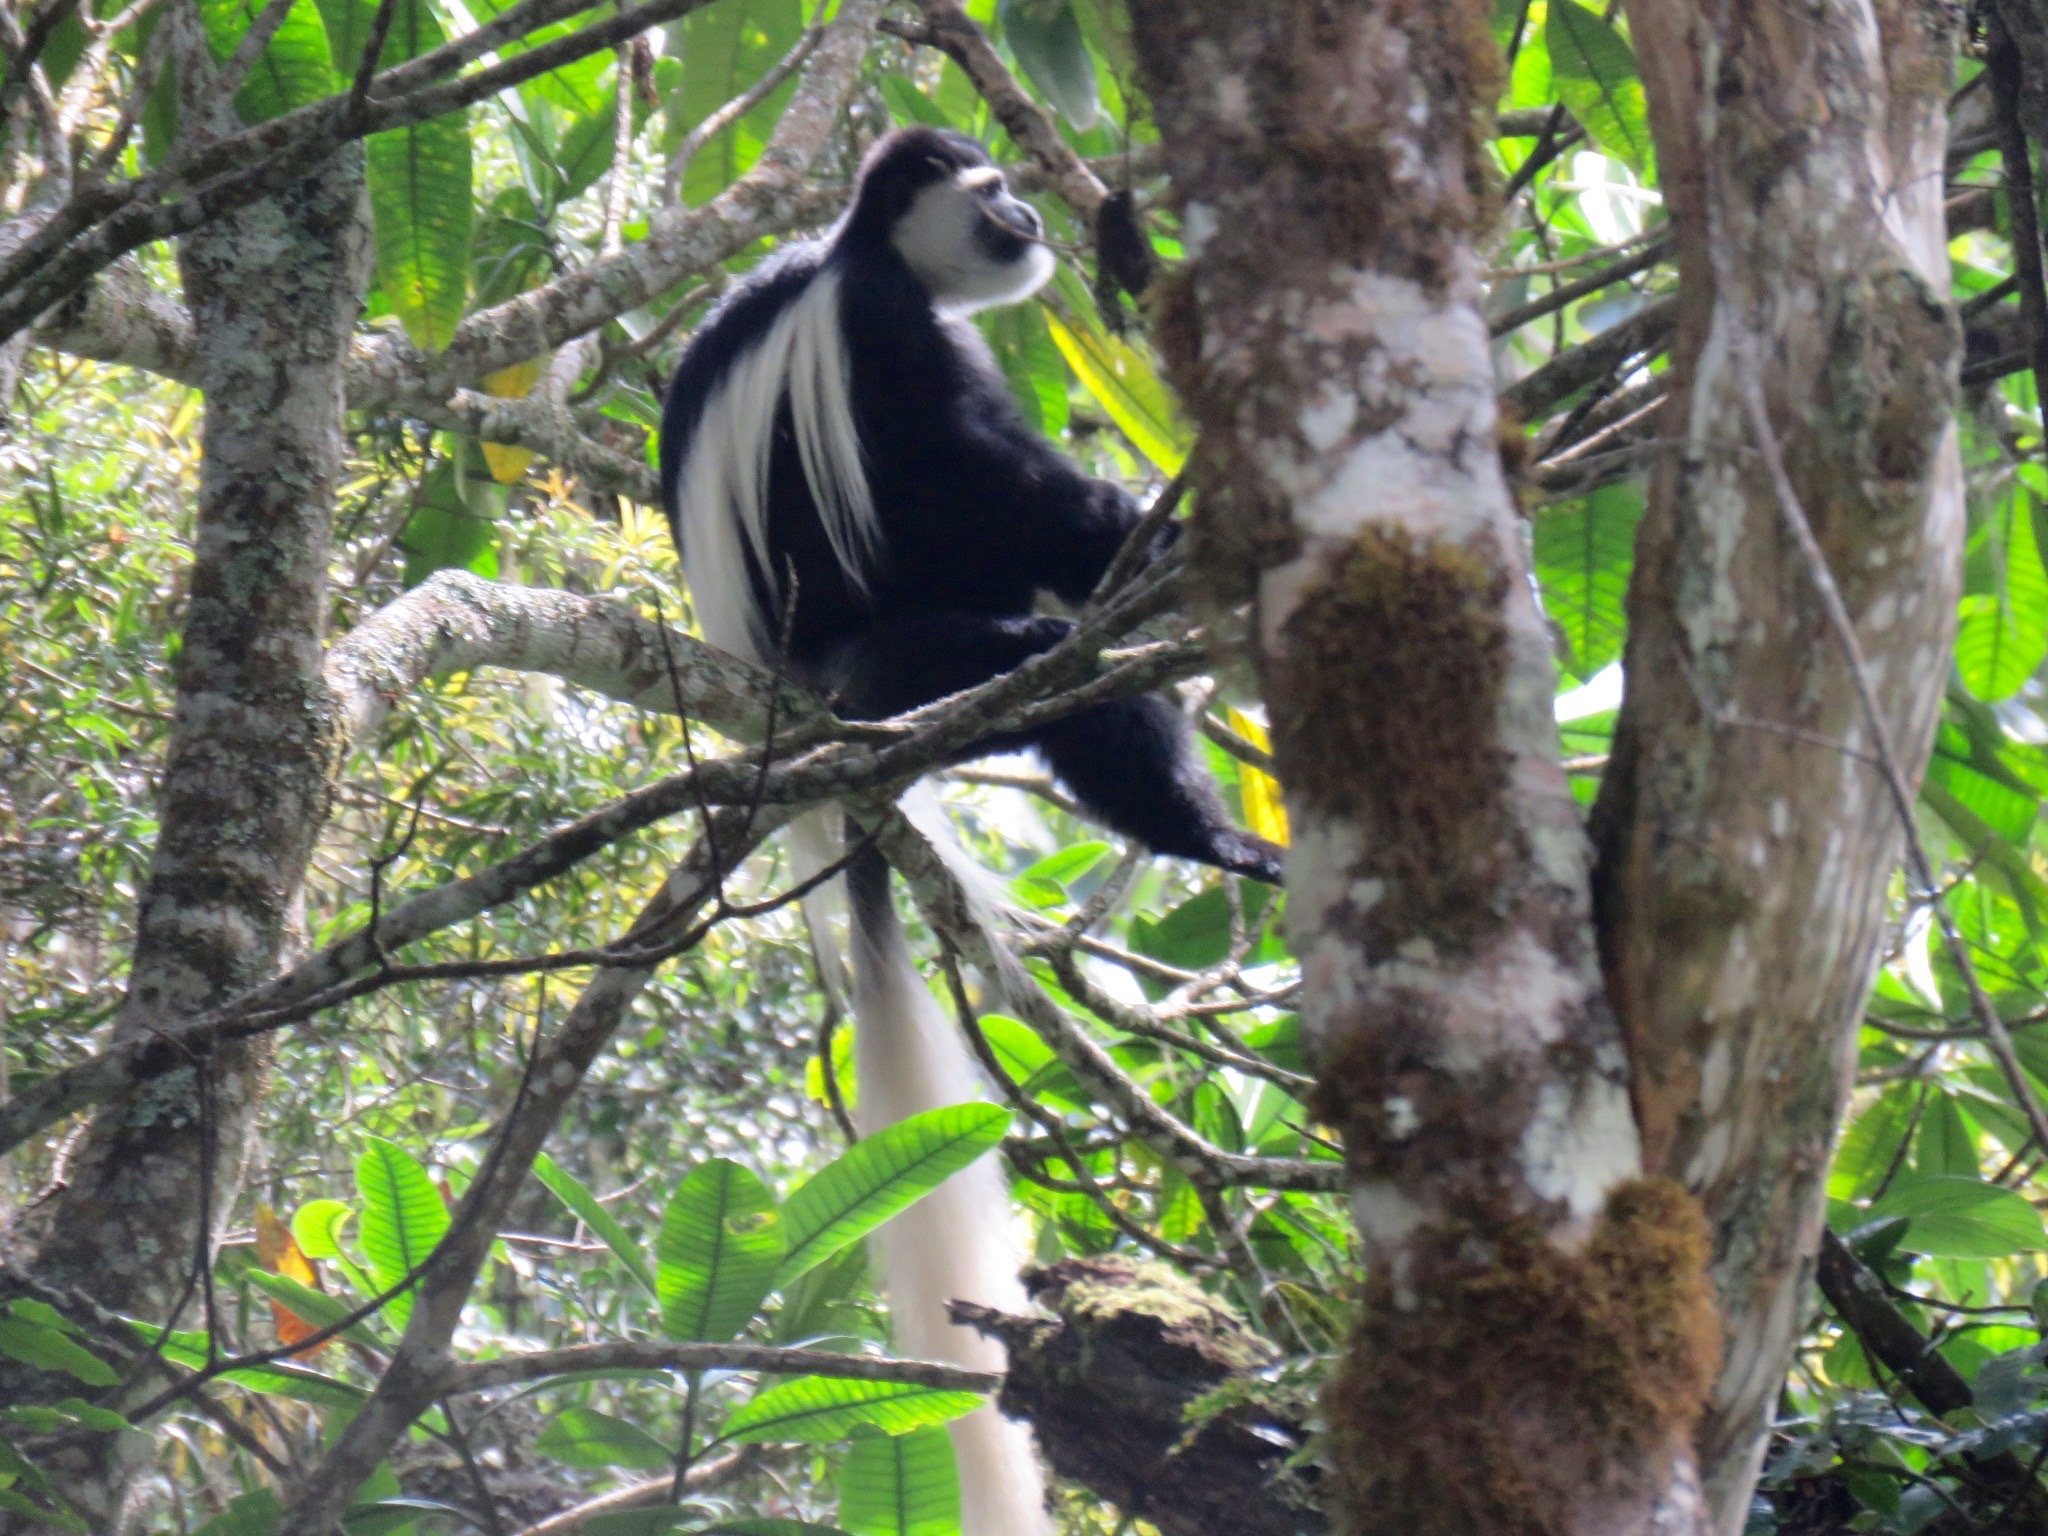 Colobus monkey in the rainforest of the Mount Kenya National Park